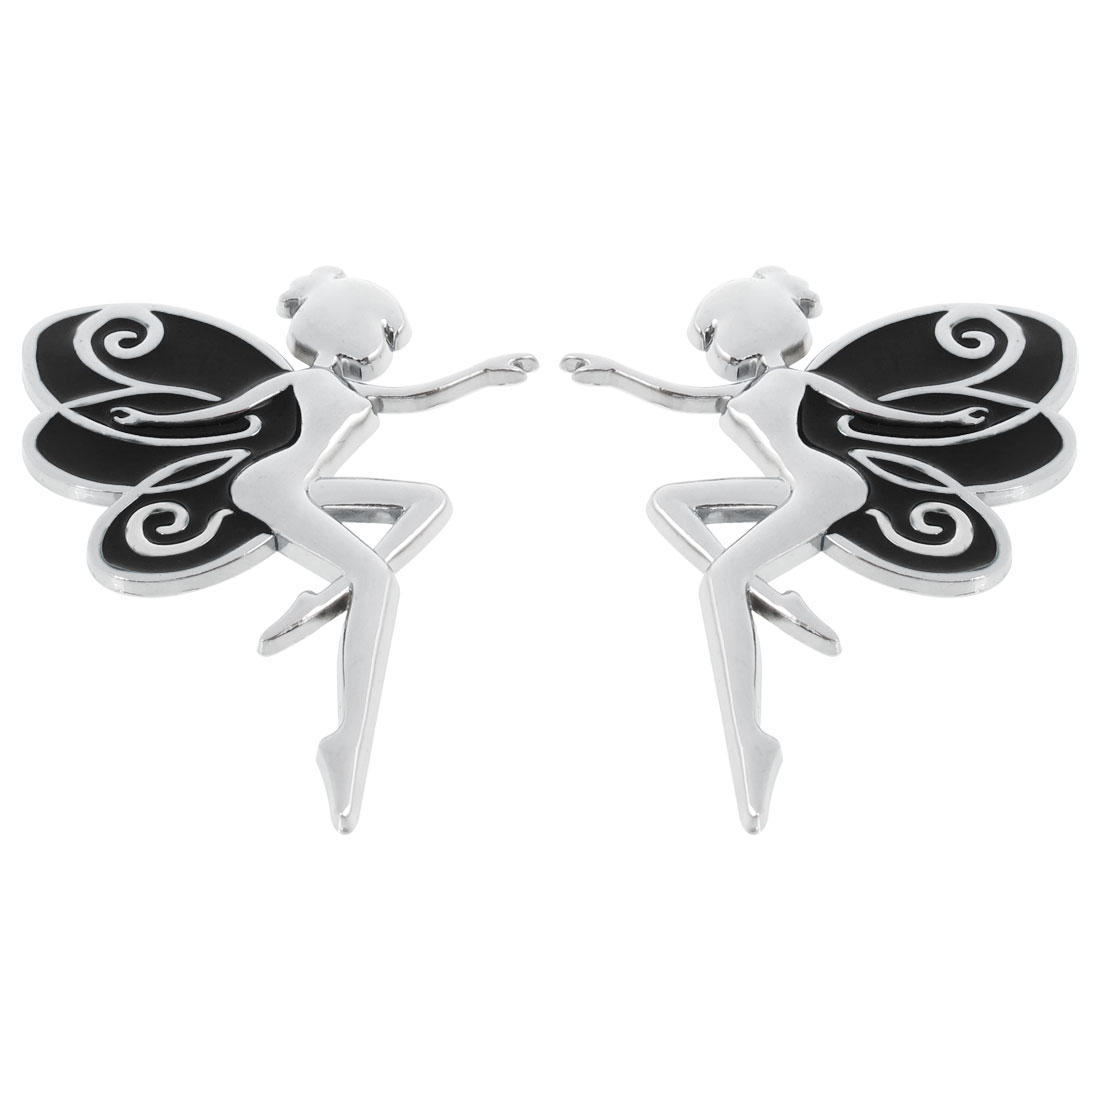 2 Pcs Black Silver Tone Metal Bee Shape Auto Car Badge Stickers